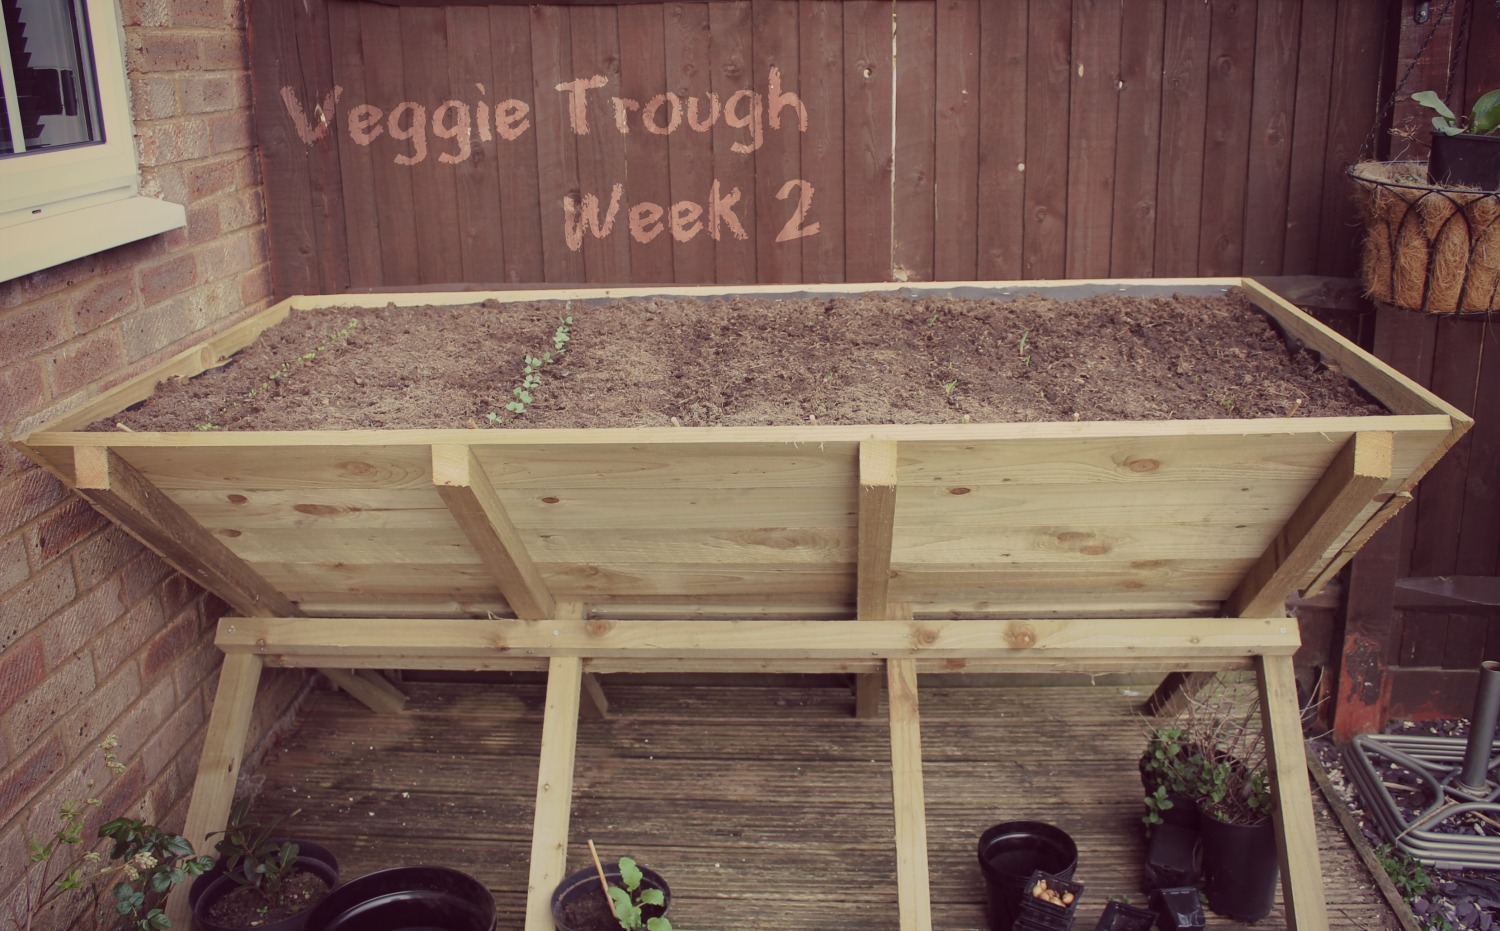 Vegetable Trough Challenge - Vegetables starting to grow